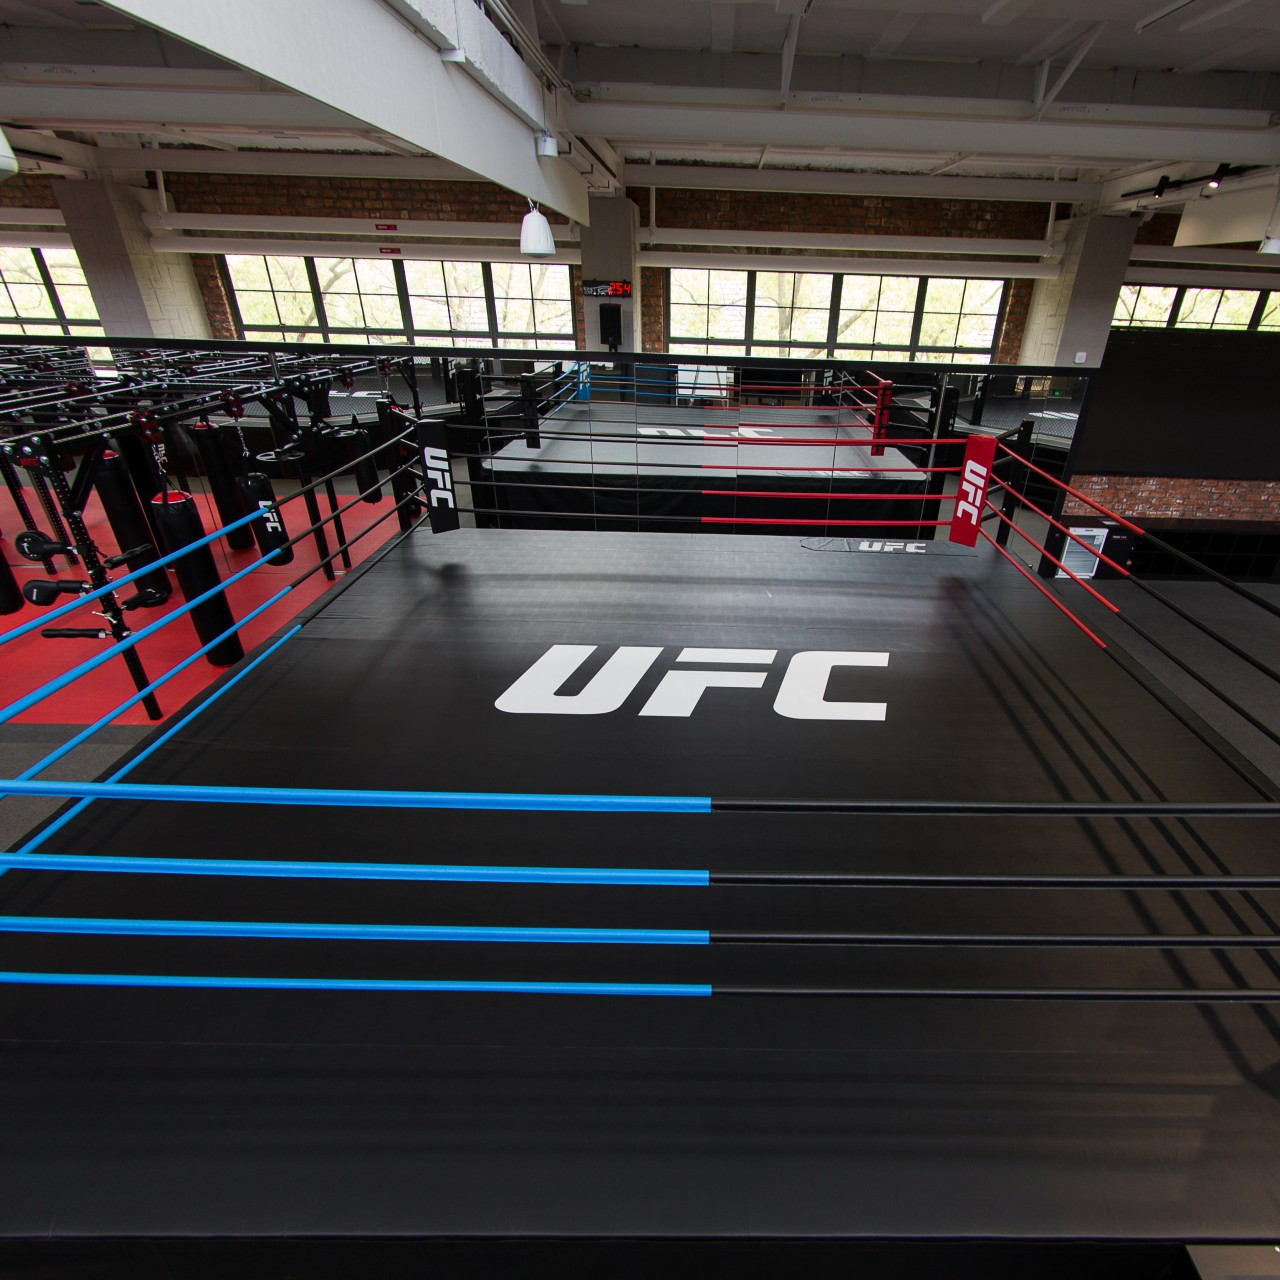 UFC Performance Institute Shanghai: take a look inside the world's